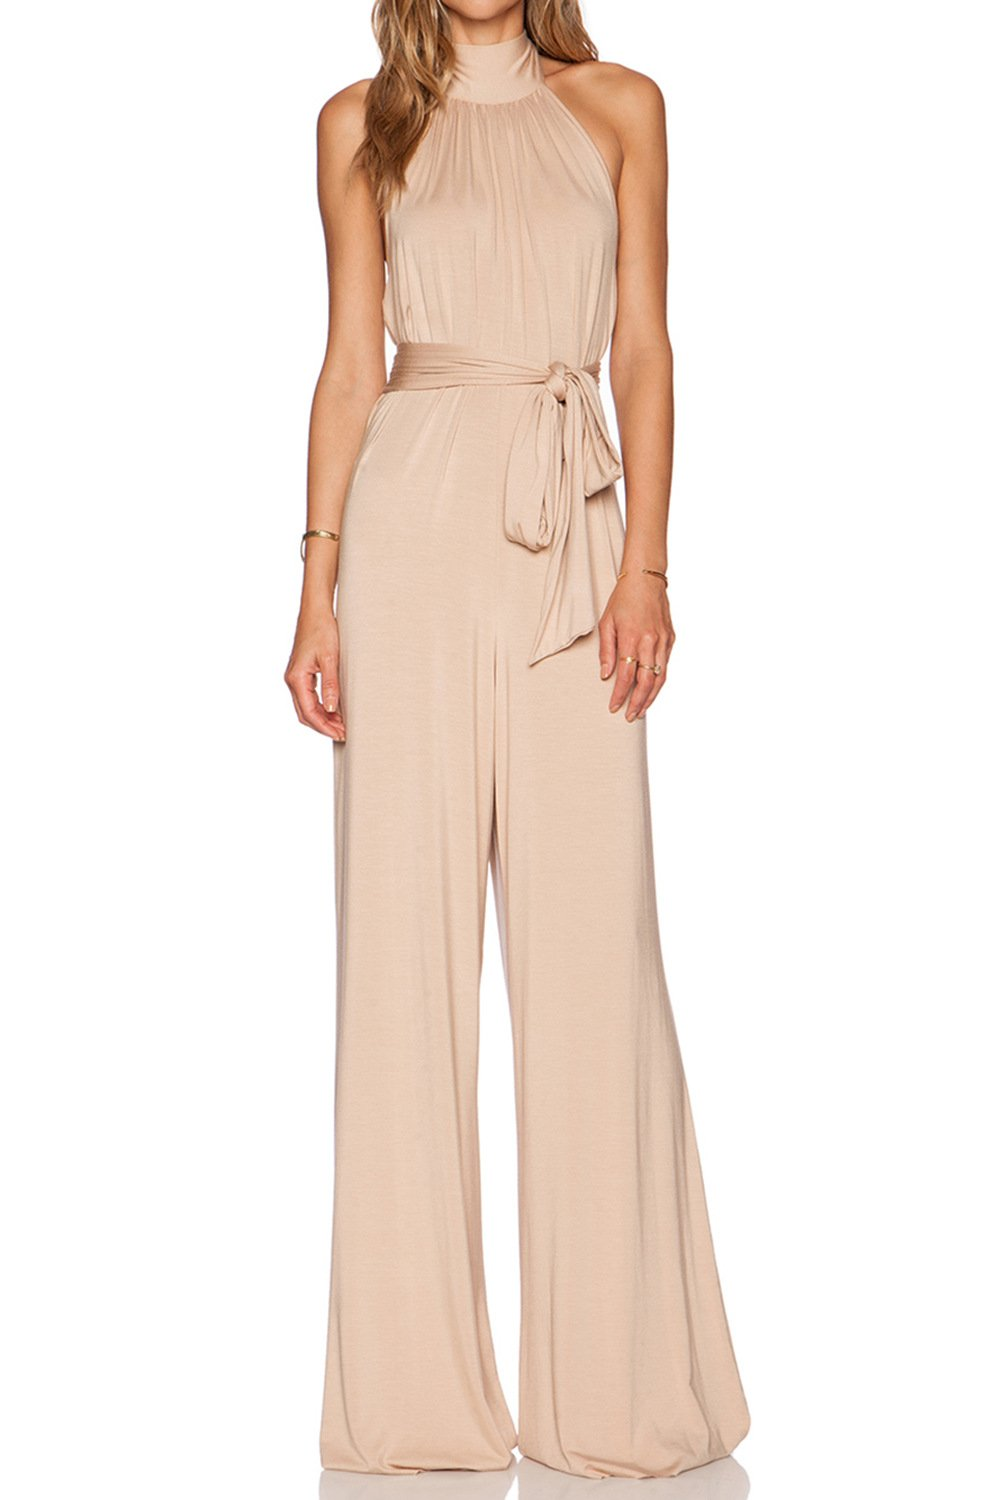 MARSEN Women's Halter Backless Rompers Long High Neck Party Jumpsuits with Belt Nude Size 6